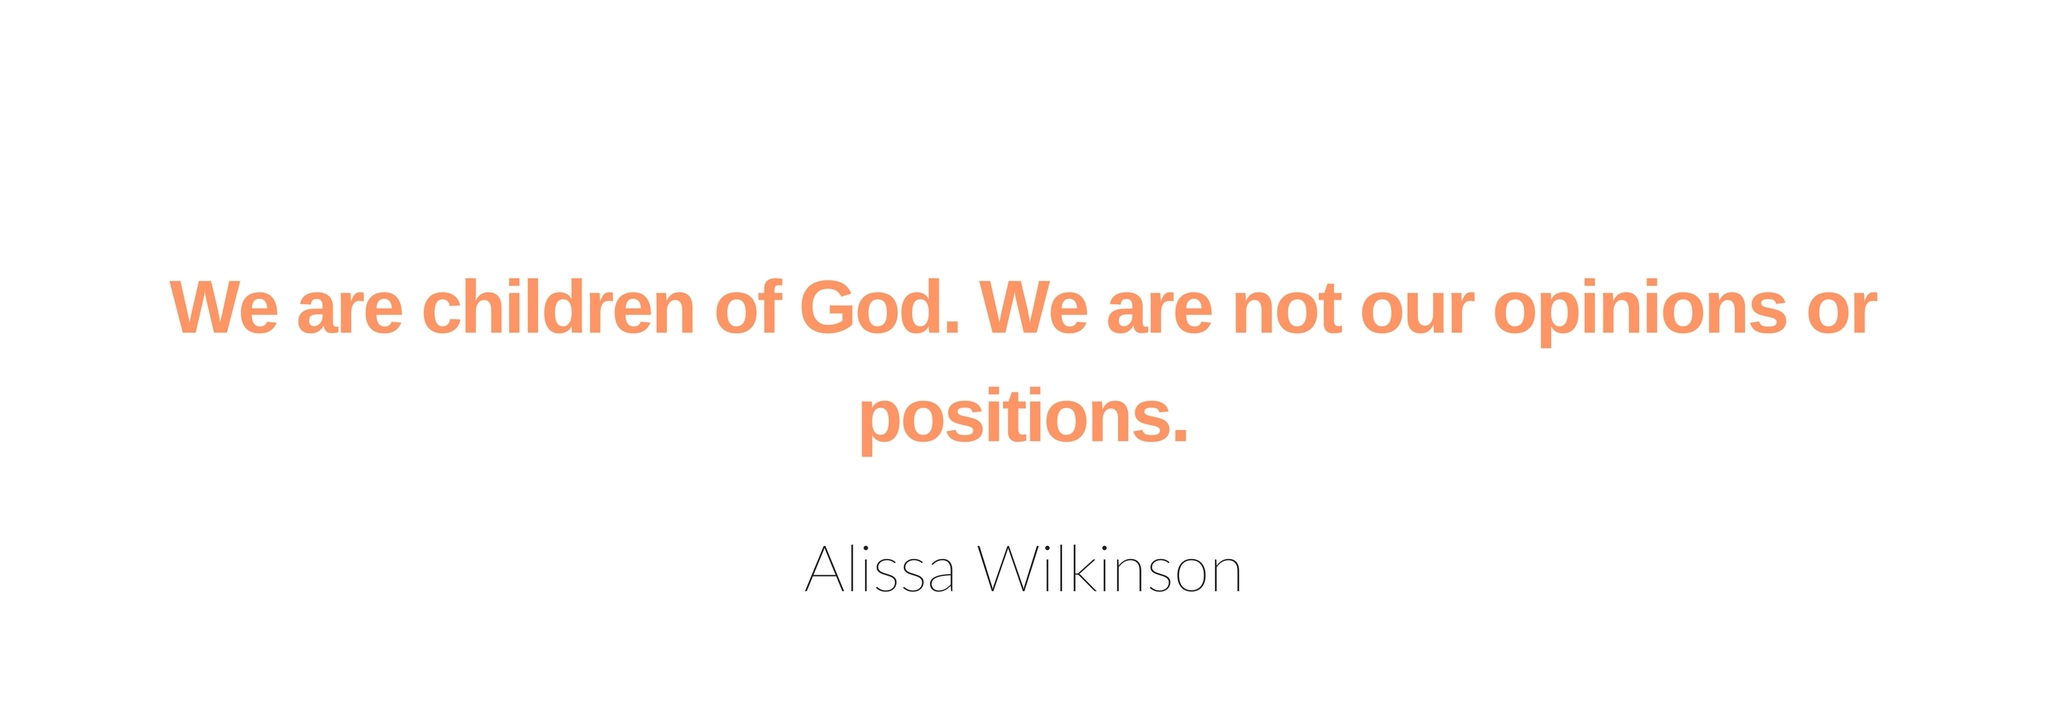 We are children of God. We are not our opinions or positions.